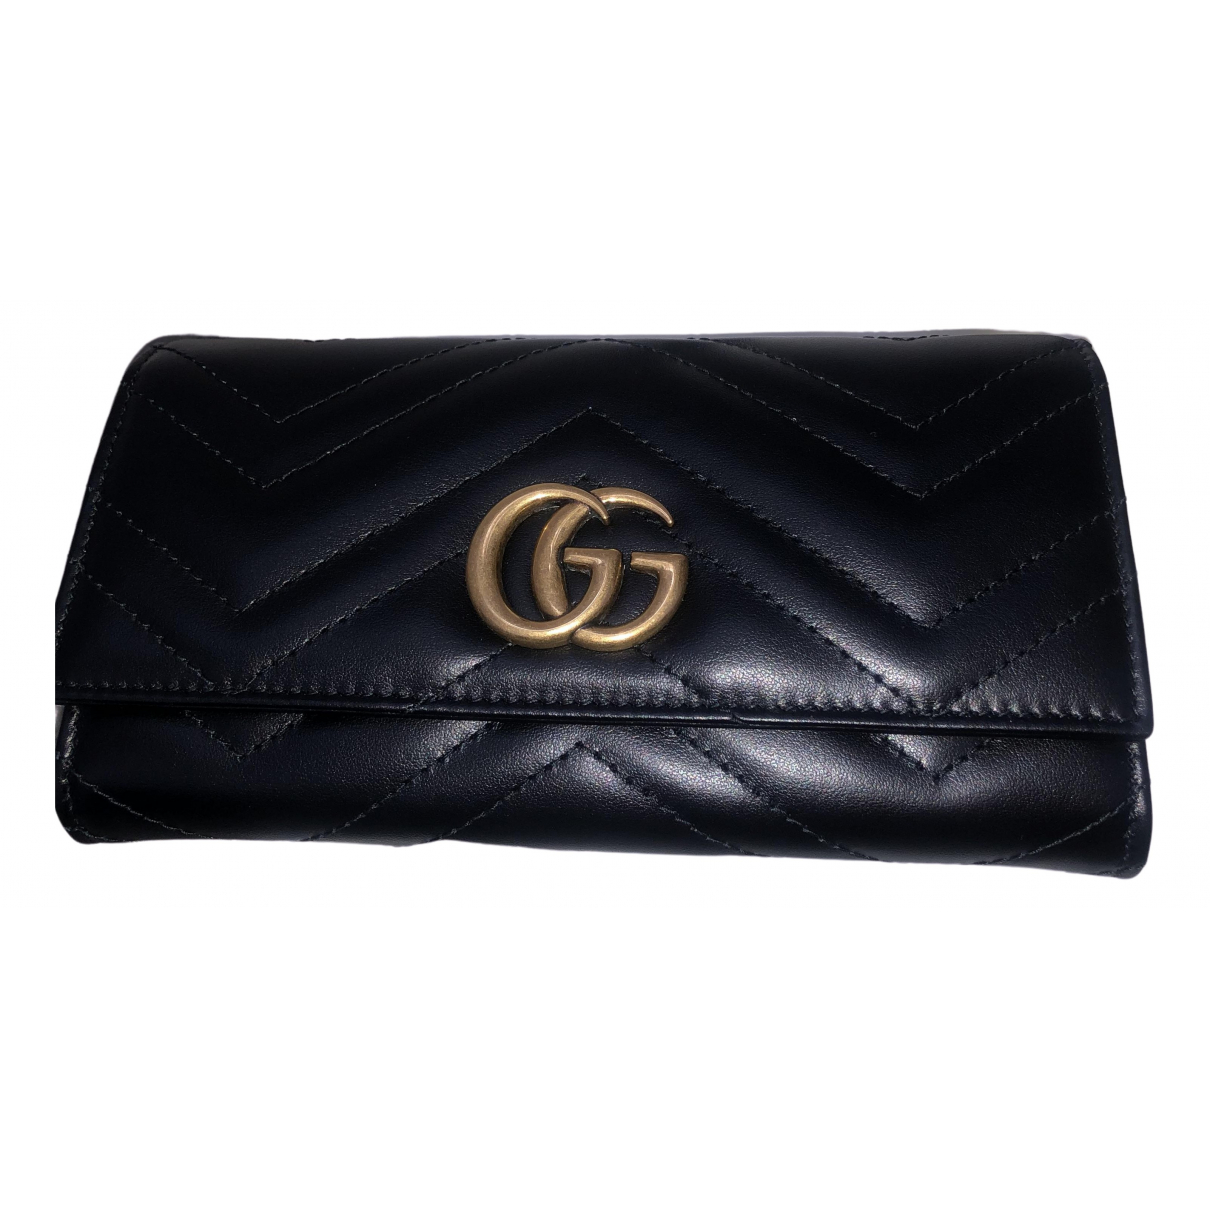 Gucci Marmont Black Patent leather wallet for Women \N